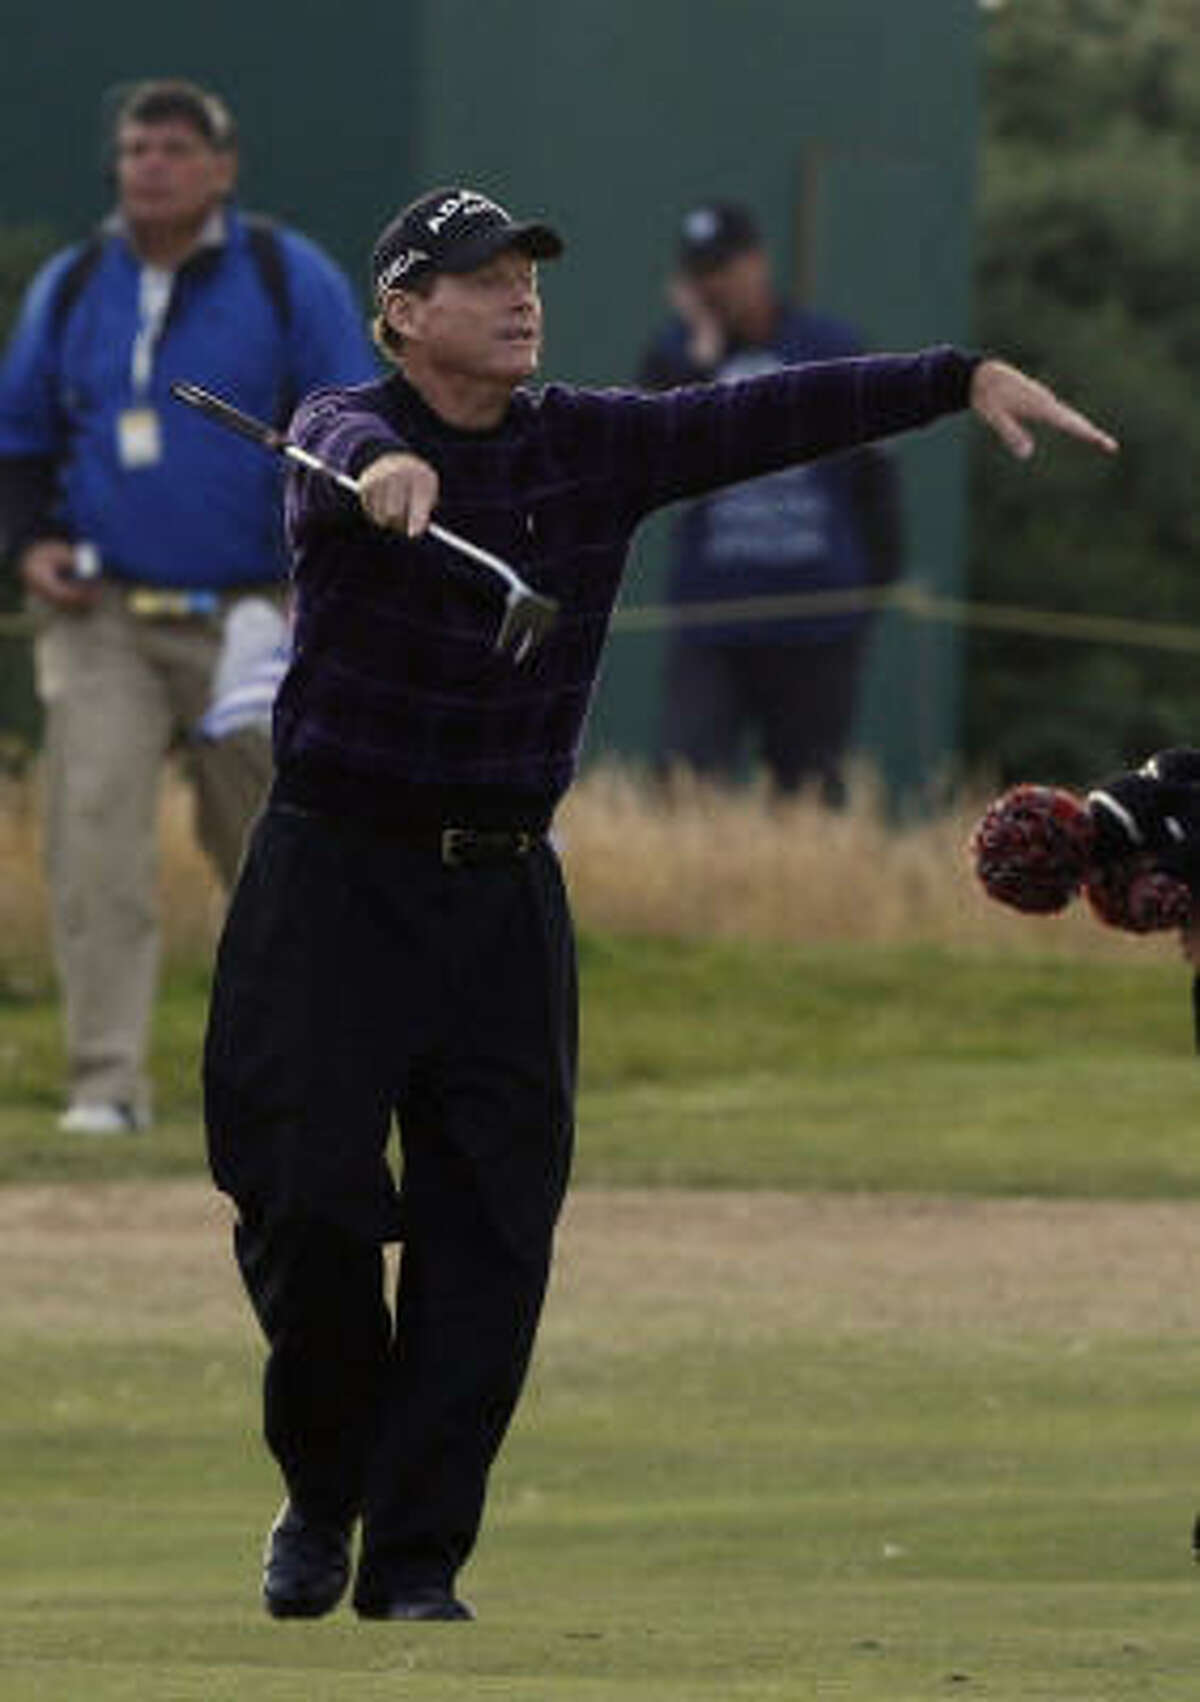 Tom Watson greets the crowd on the 18th green during the third round of the British Open.